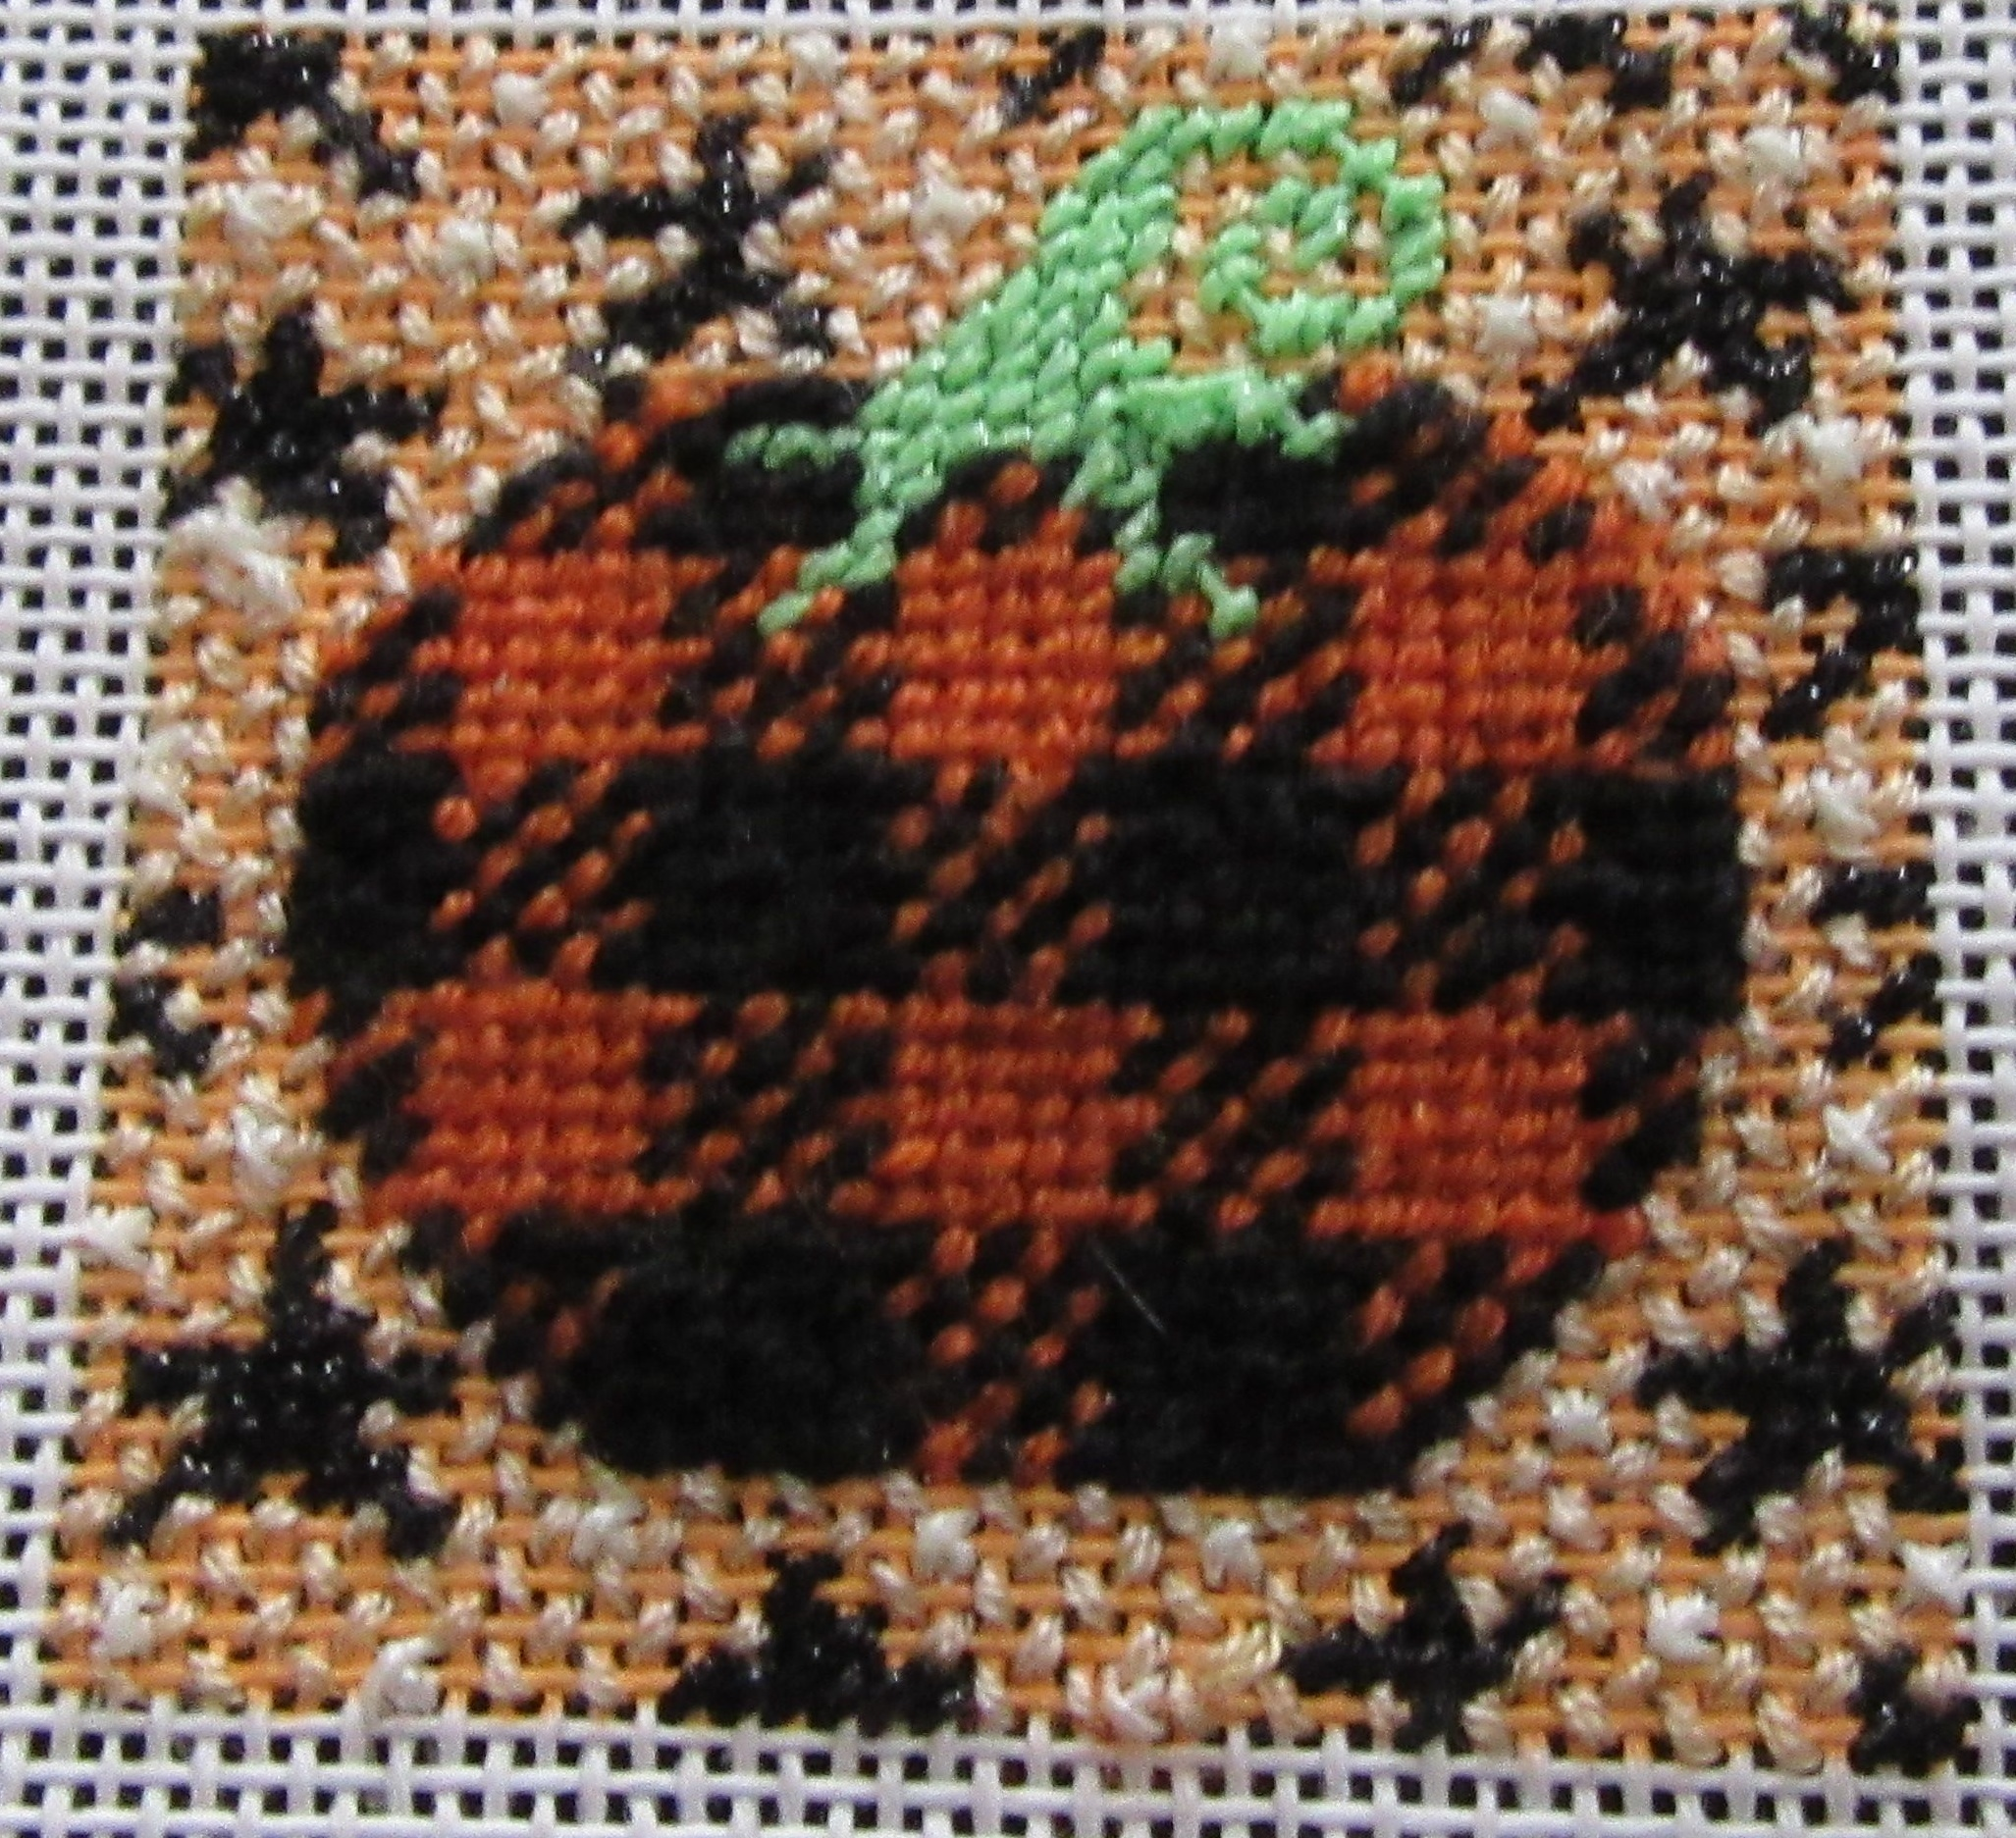 needlepoint stitches stitch diagrams 3 5 mm to xlr wiring diagram halloween mindy mini guide nuts about